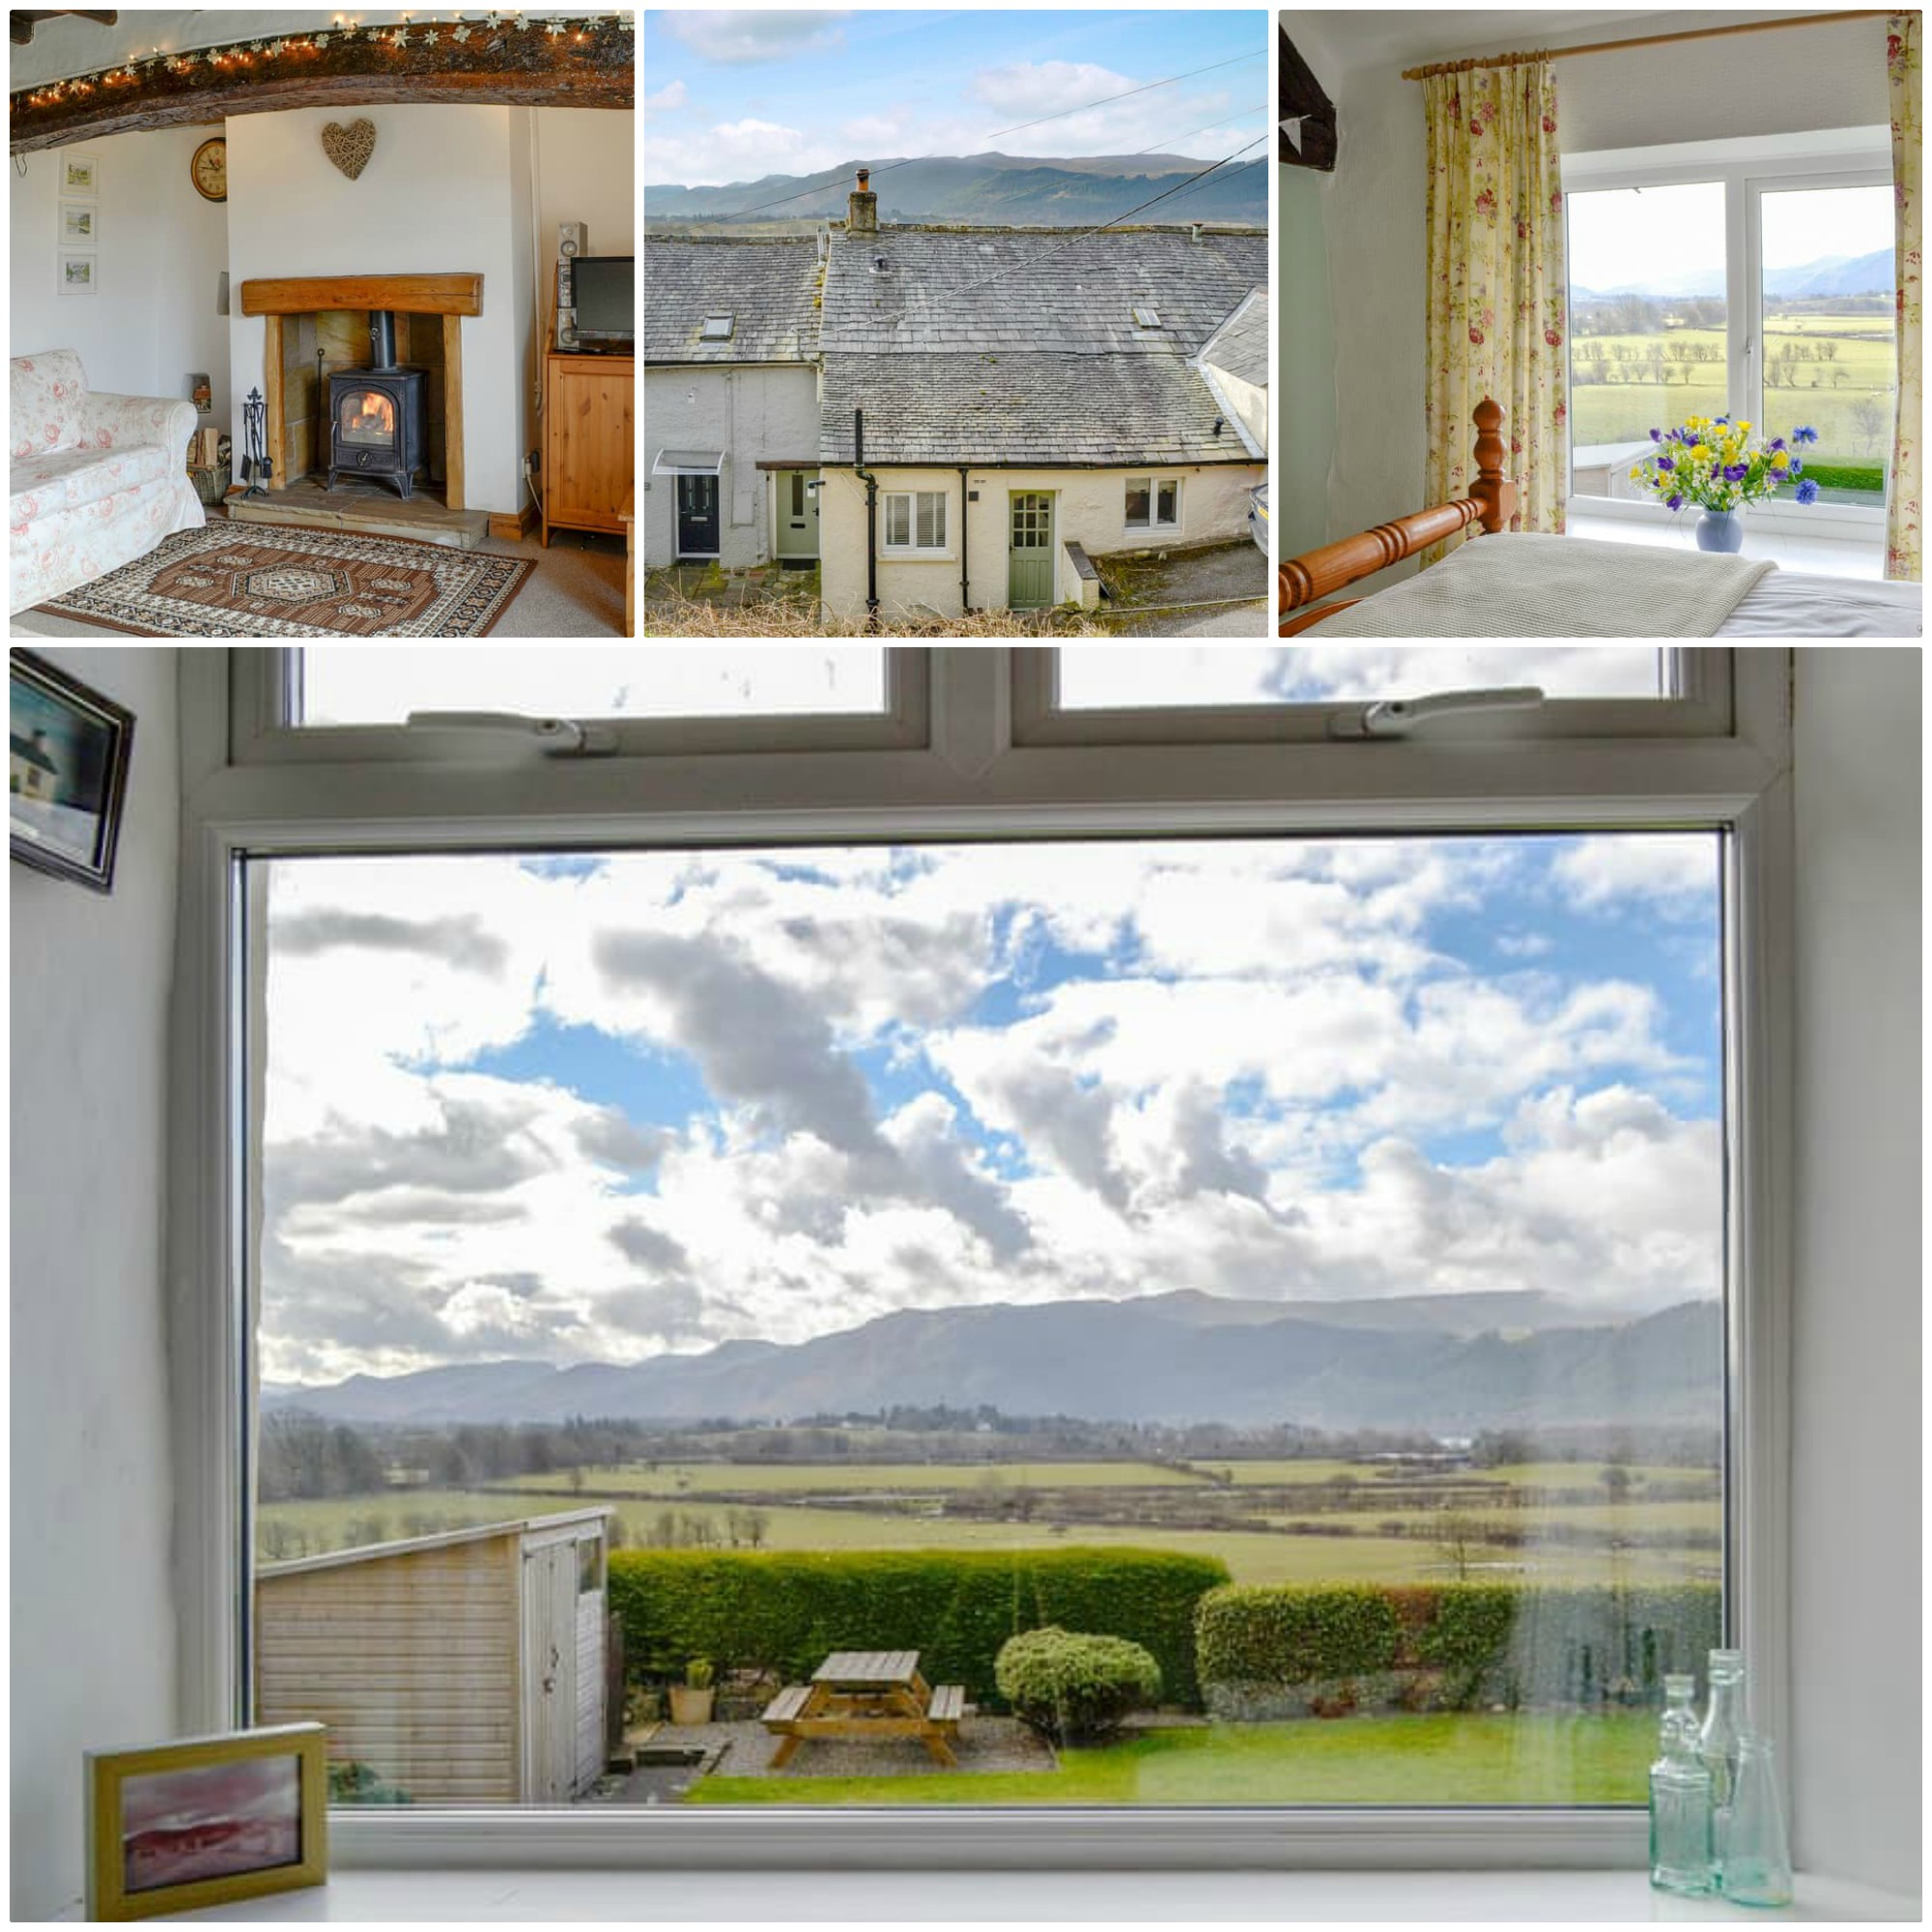 Breathtaking views of Bassenthwaite from the bedroom windows and garden this Lakeland terraced cottage is also pet friendly